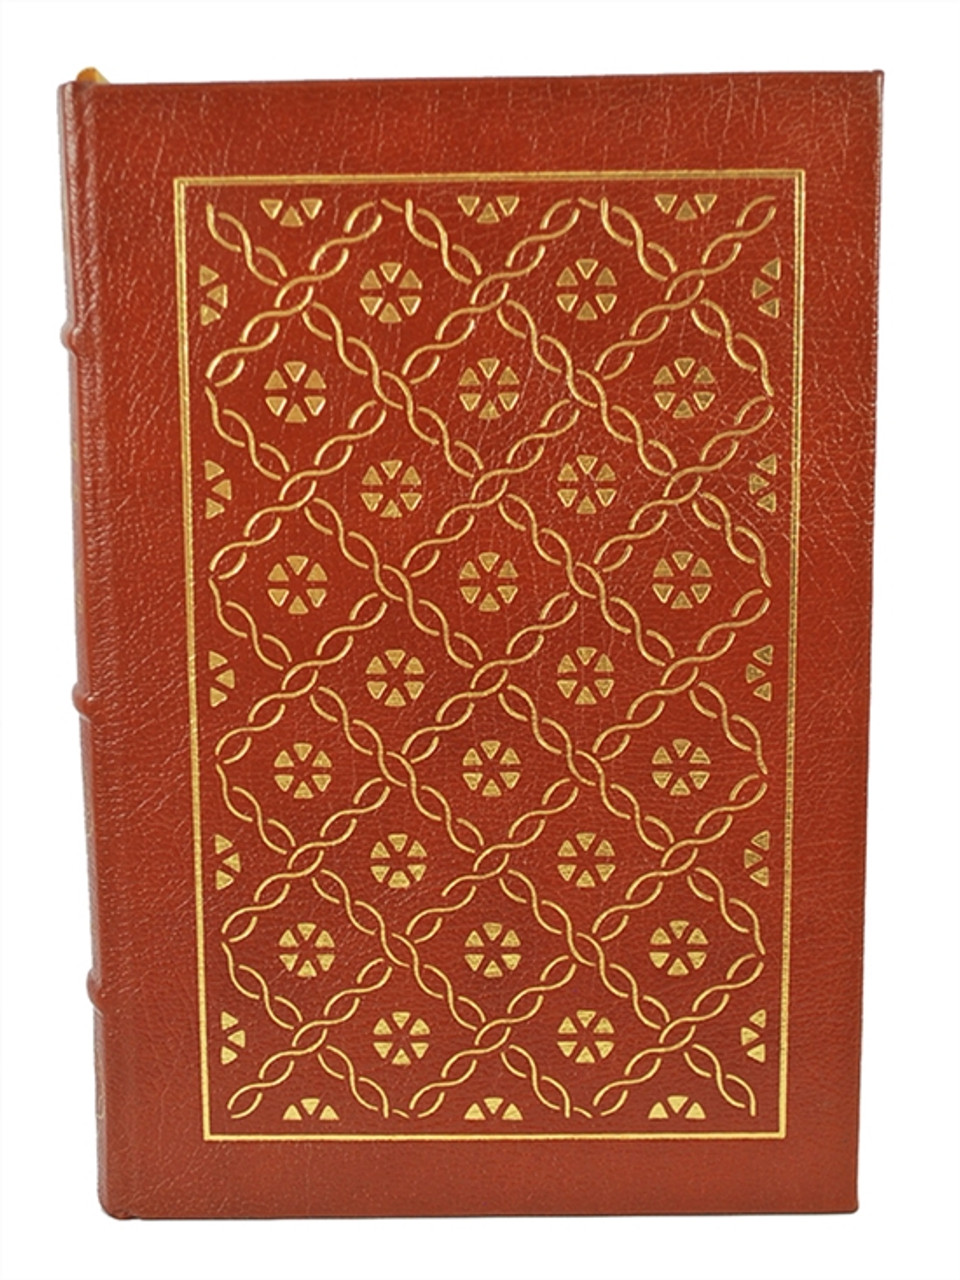 """Easton Press """"The American Leonardo"""" by Carleton Mabee, Leather Bound Collector's Edition [Very Fine]"""